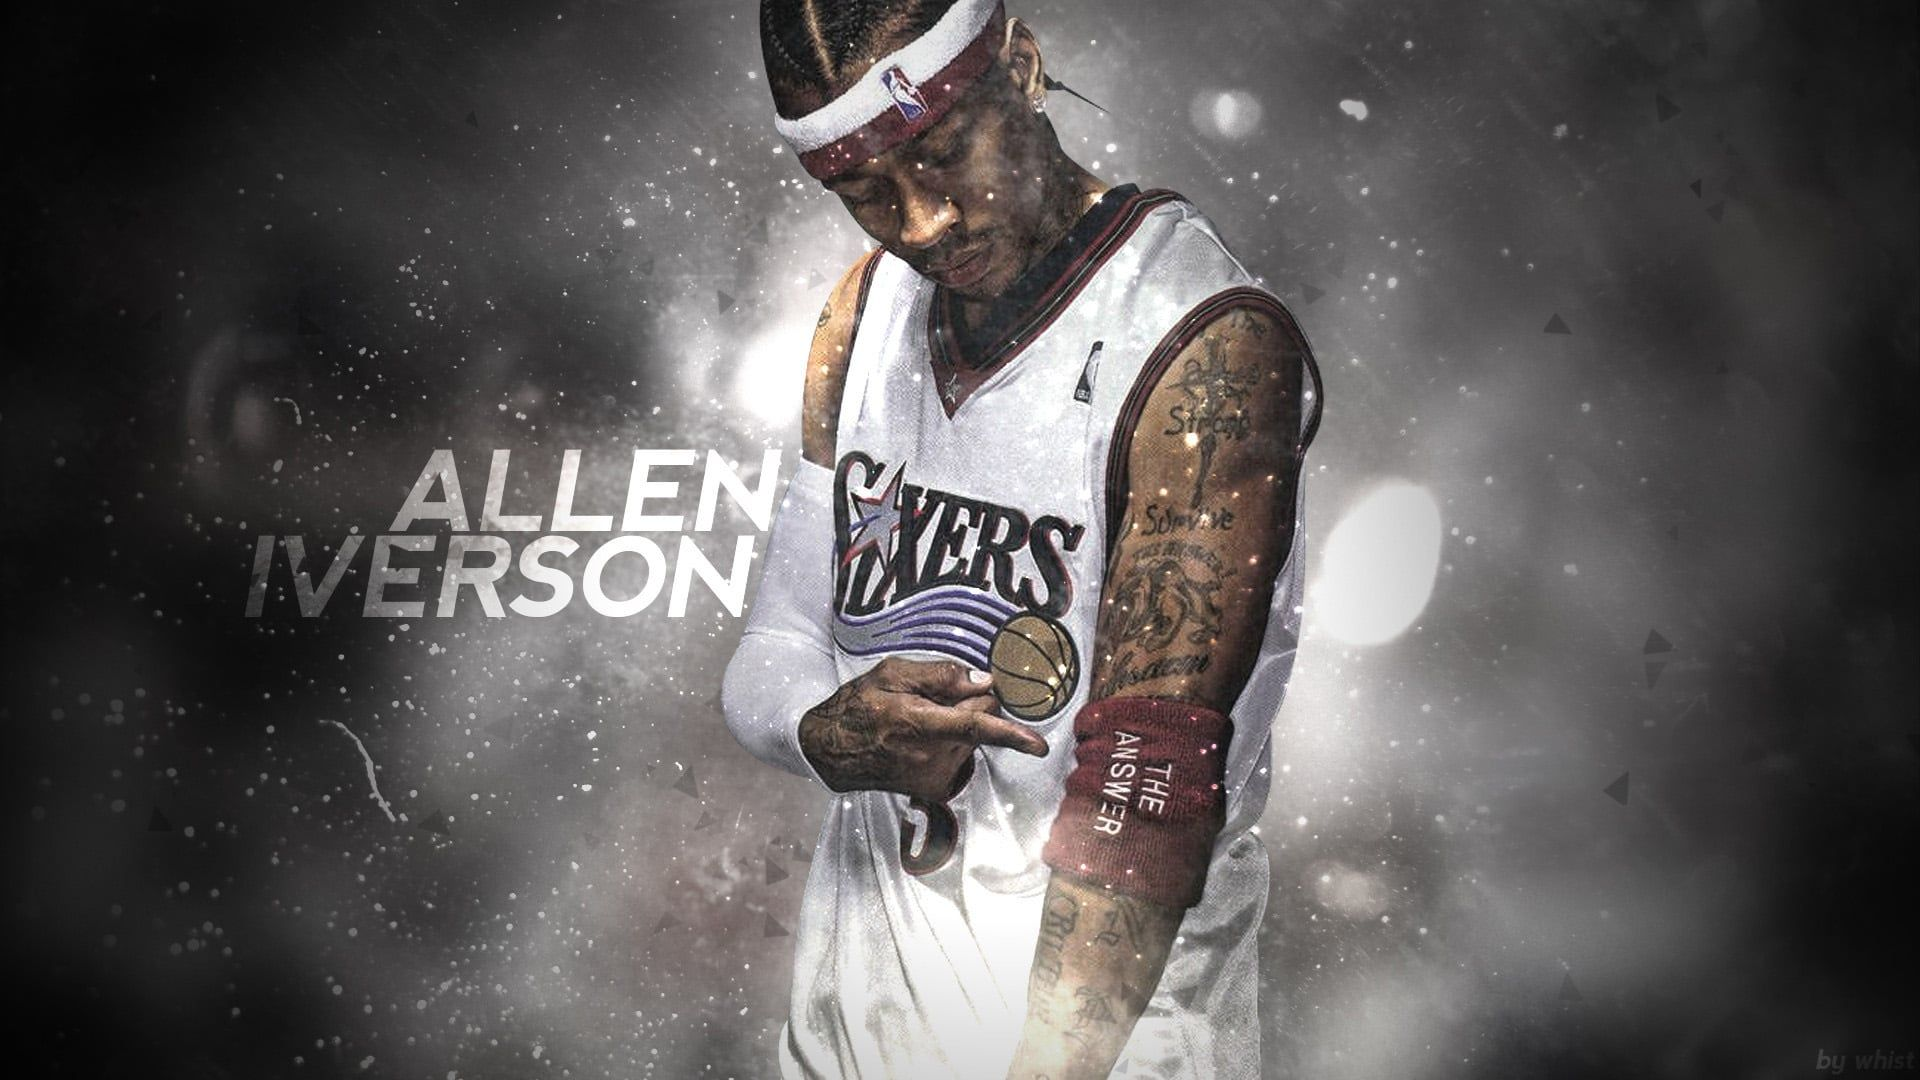 Allen Iverson Wallpaper Full Hd Pictures Allen Iverson Wallpapers Nba Wallpapers Allen Iverson